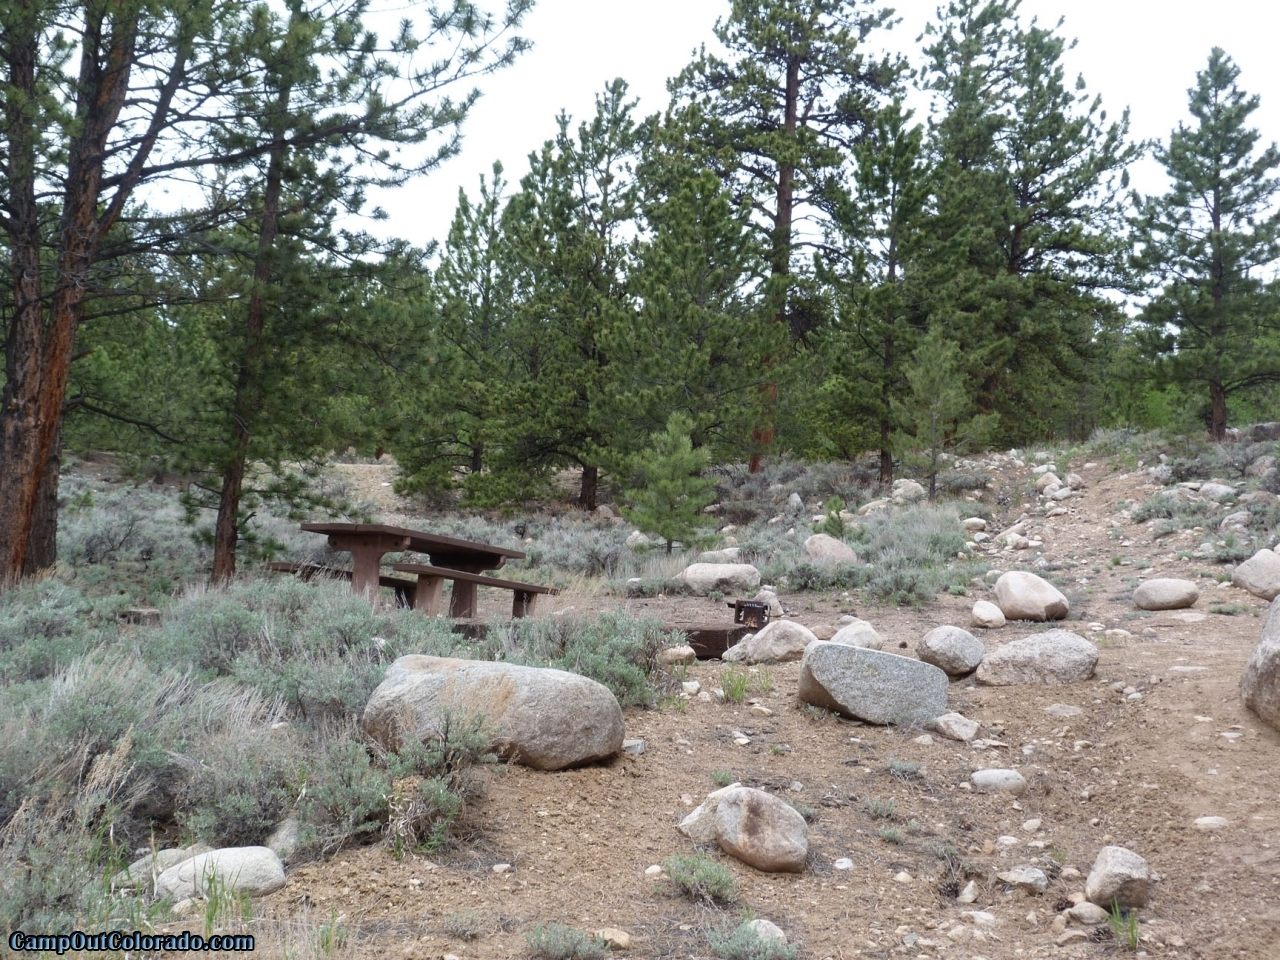 camp-out-colorado-lakeview-campground-very-rocky-campsite